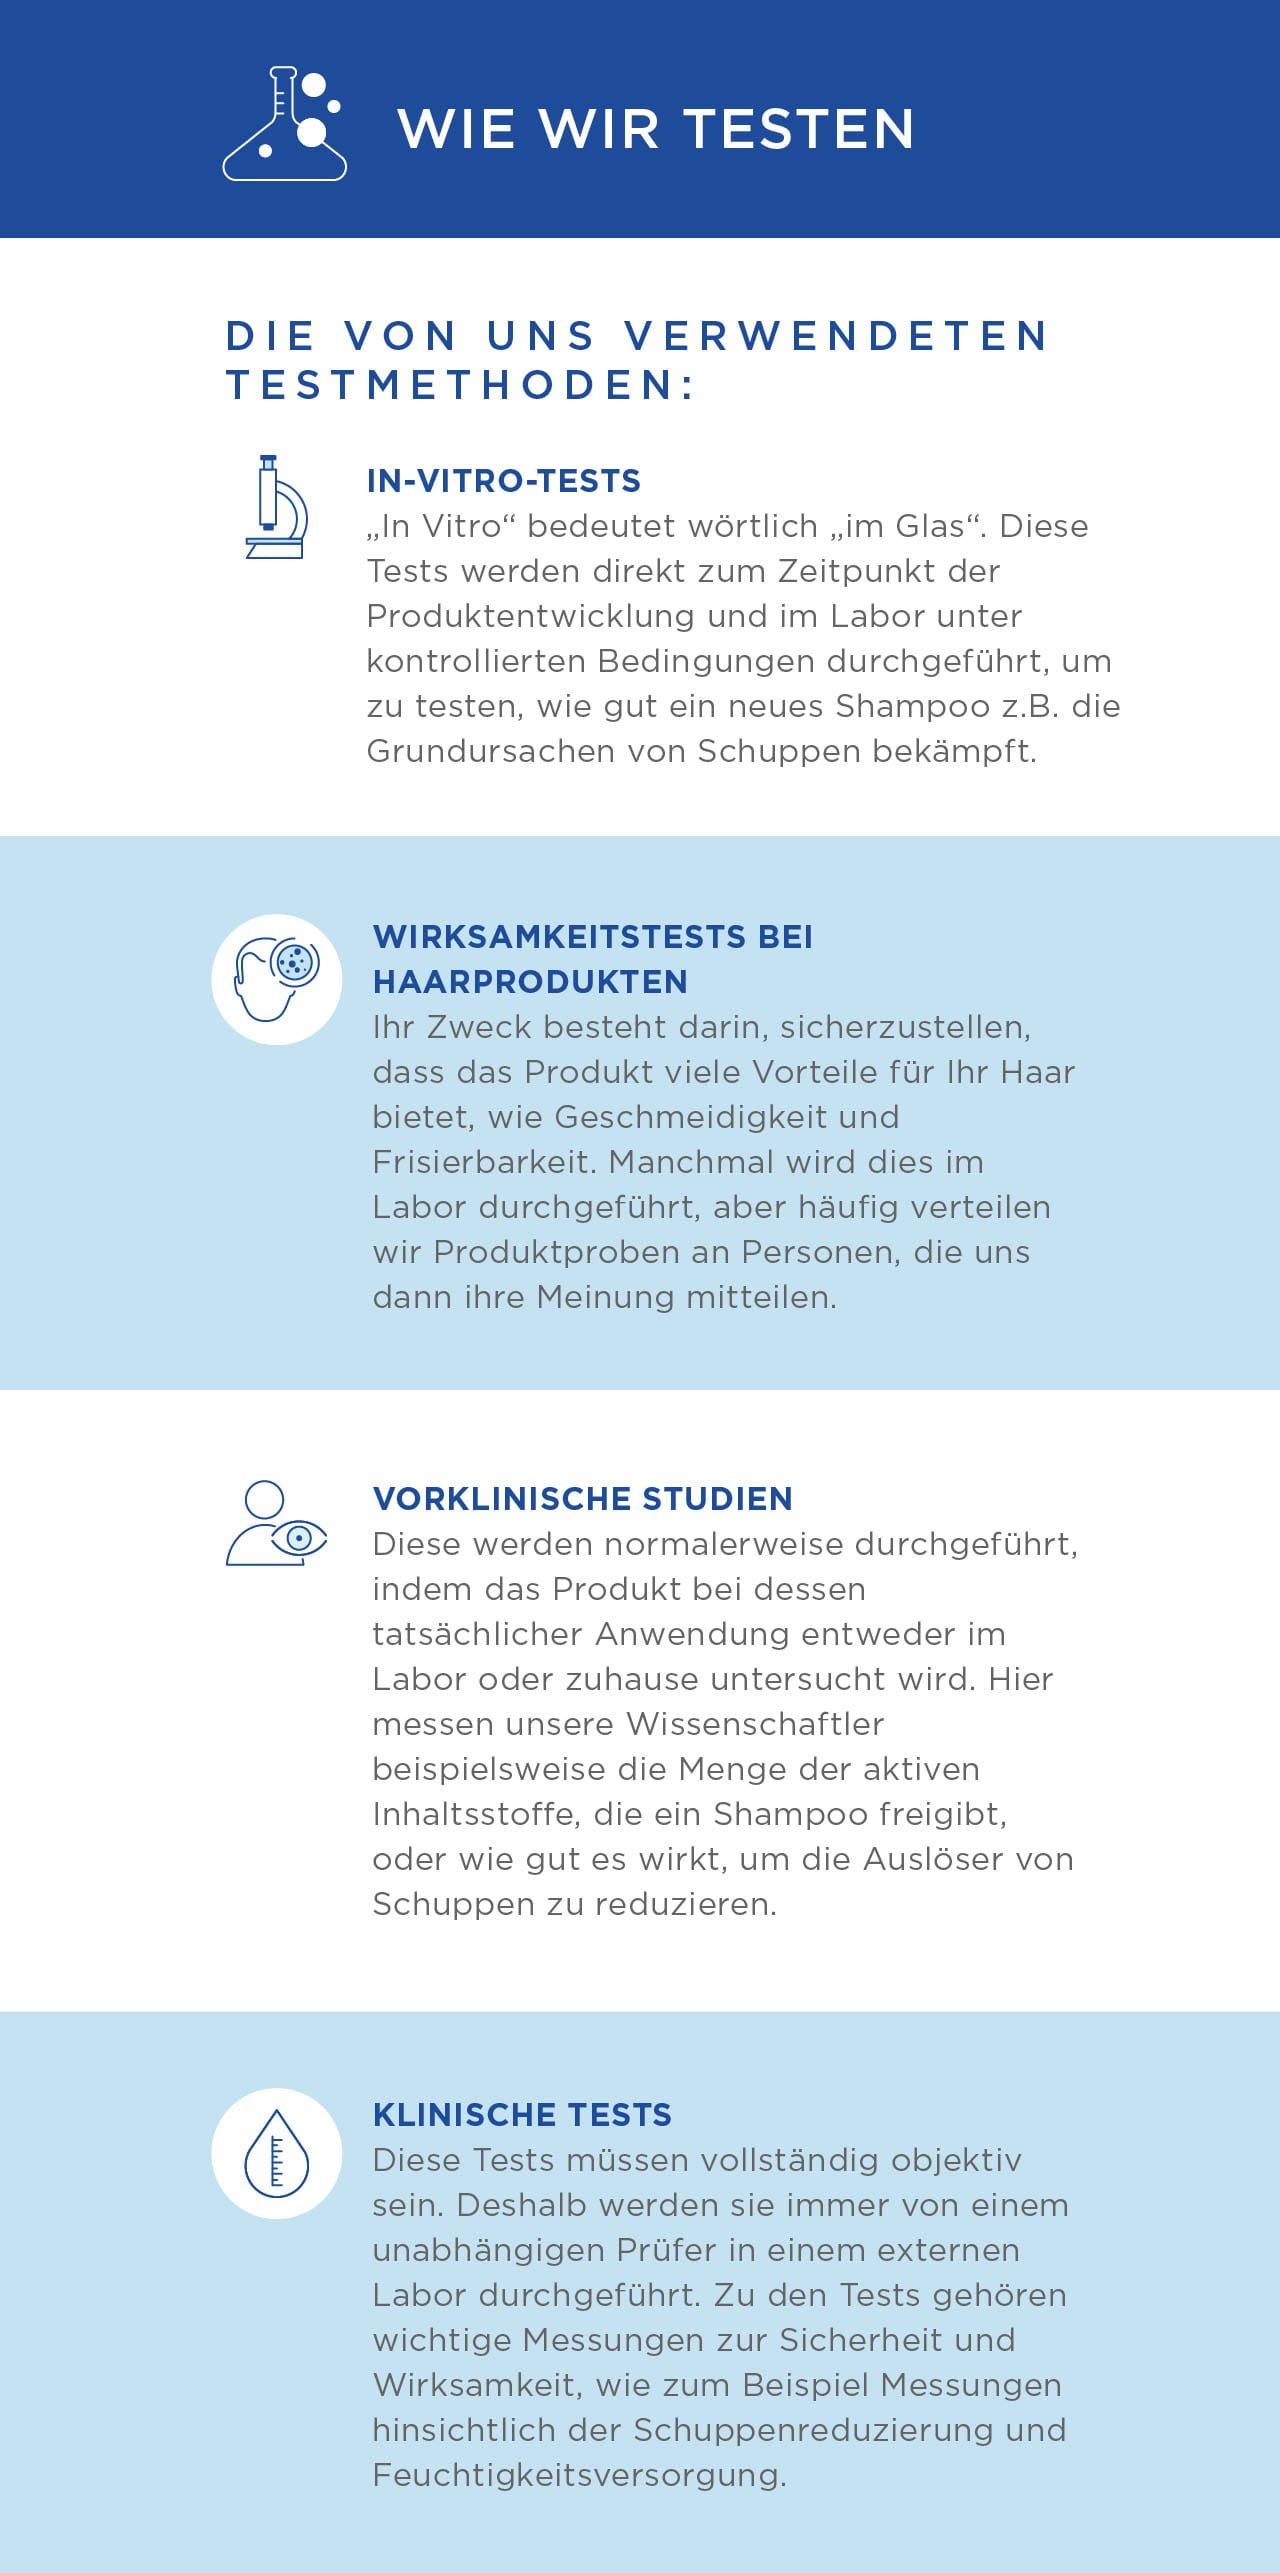 HS_Infographic_How_We_Test_GER_UK